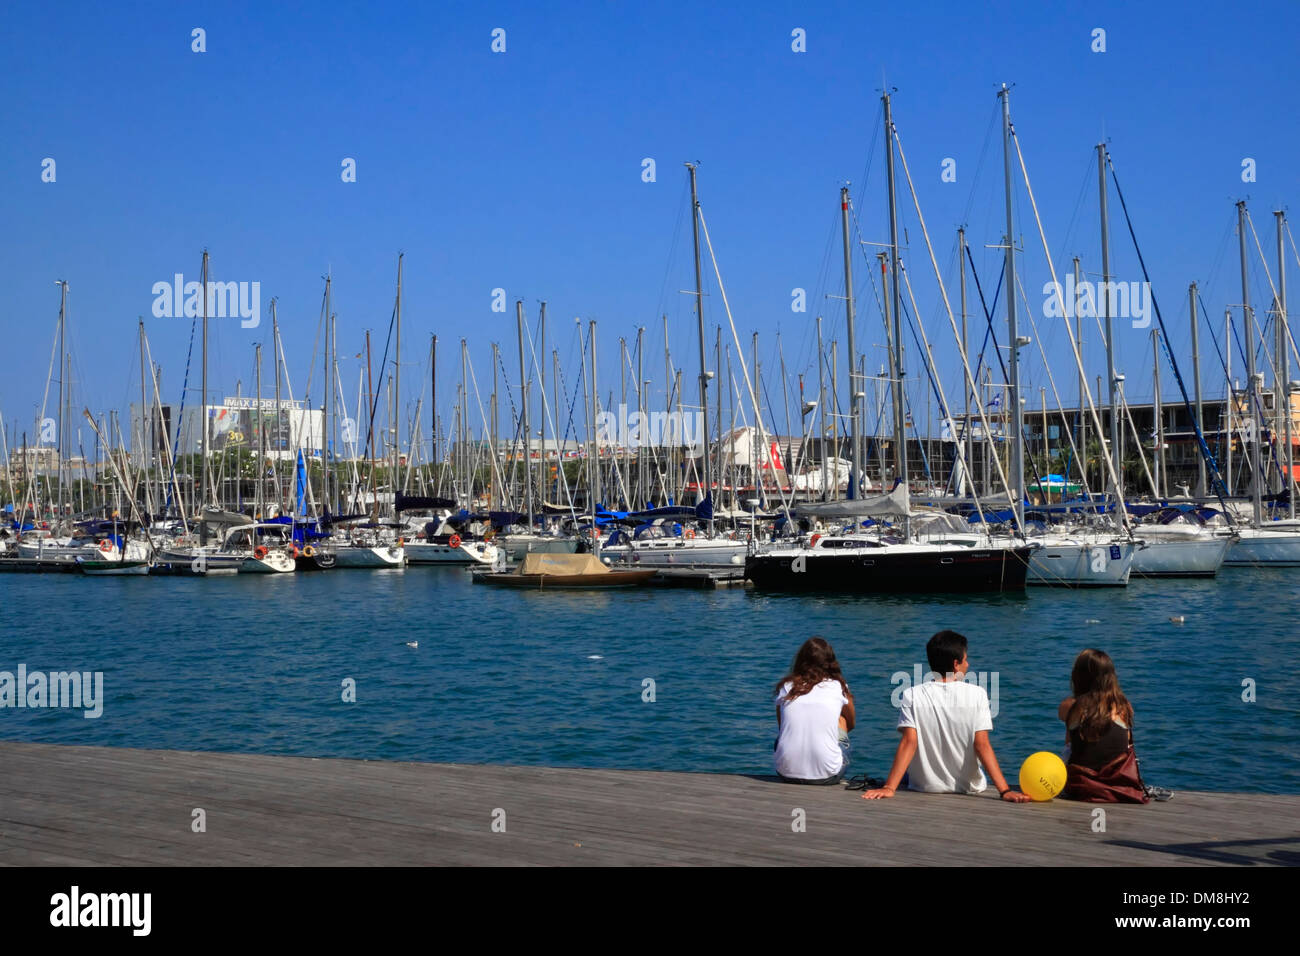 Sailing boats at Port Vell, Barcelona, Spain, Europe - Stock Image